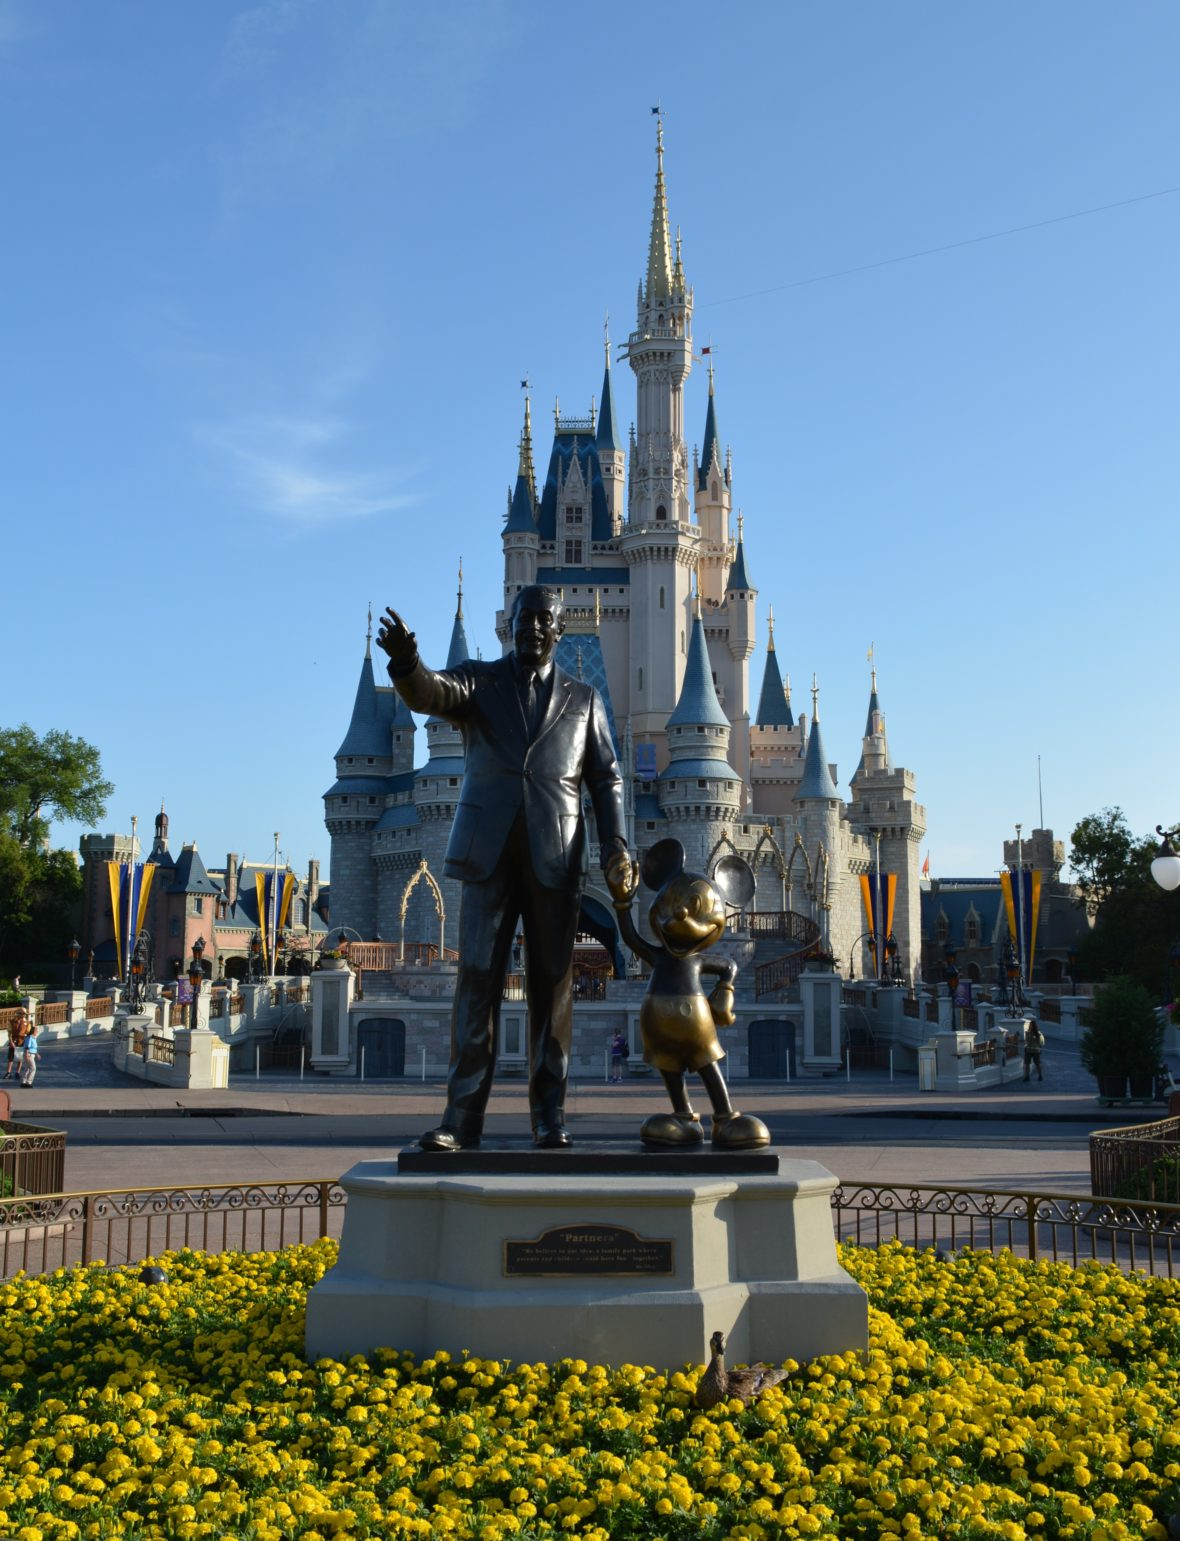 The Mickey and Walt Statue in front of Cinderella Castle in Walt Disney World